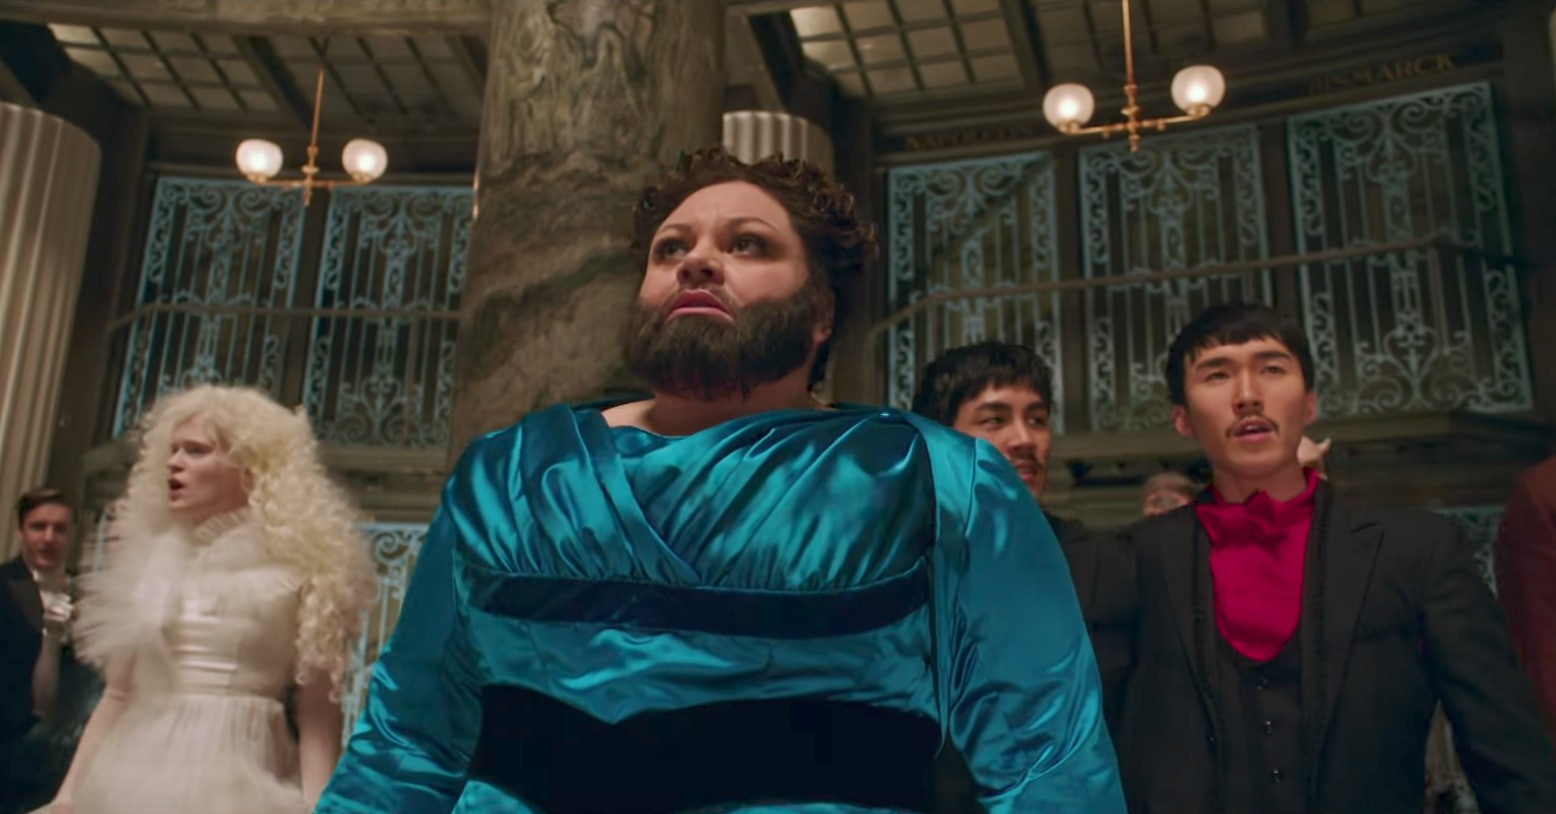 Lettie Lutz Real The Actor Who Plays The Bearded Lady In The Greatest Showman Has